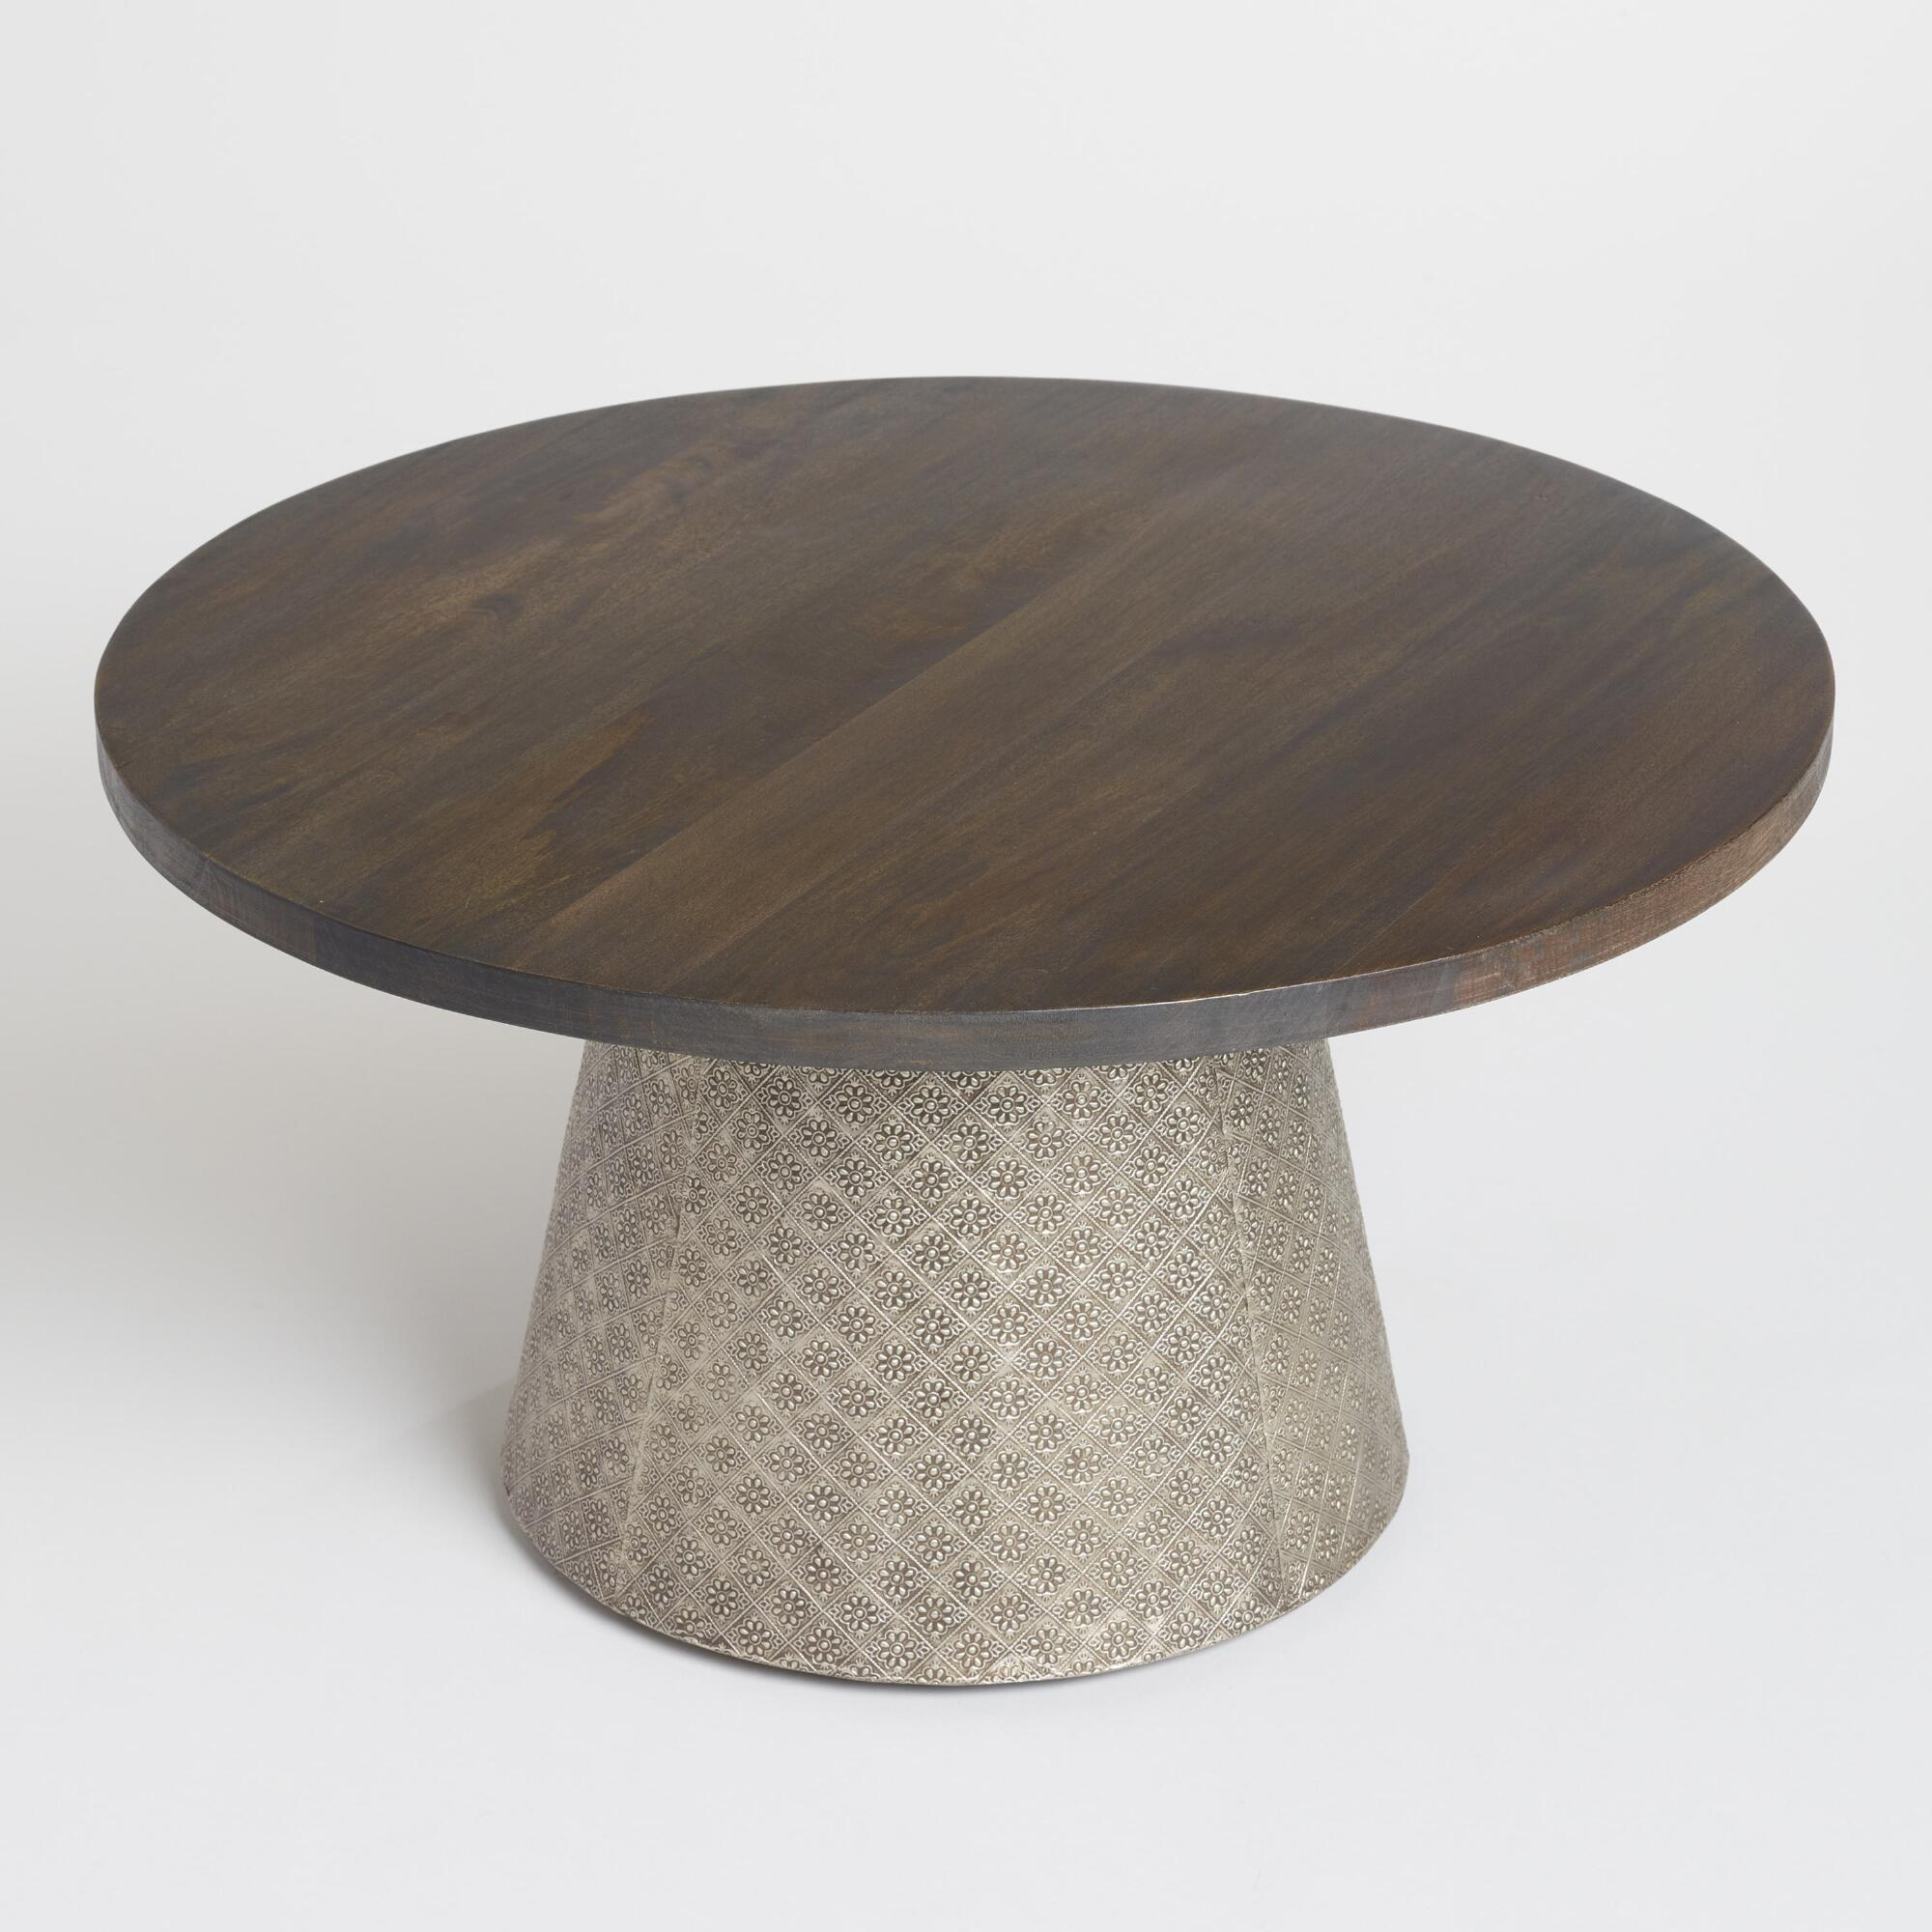 coffee tables end accent world market iipsrv fcgi tier table target round wood and embossed metal kiran linen placemats pier outdoor furniture bunnings couch pottery barn